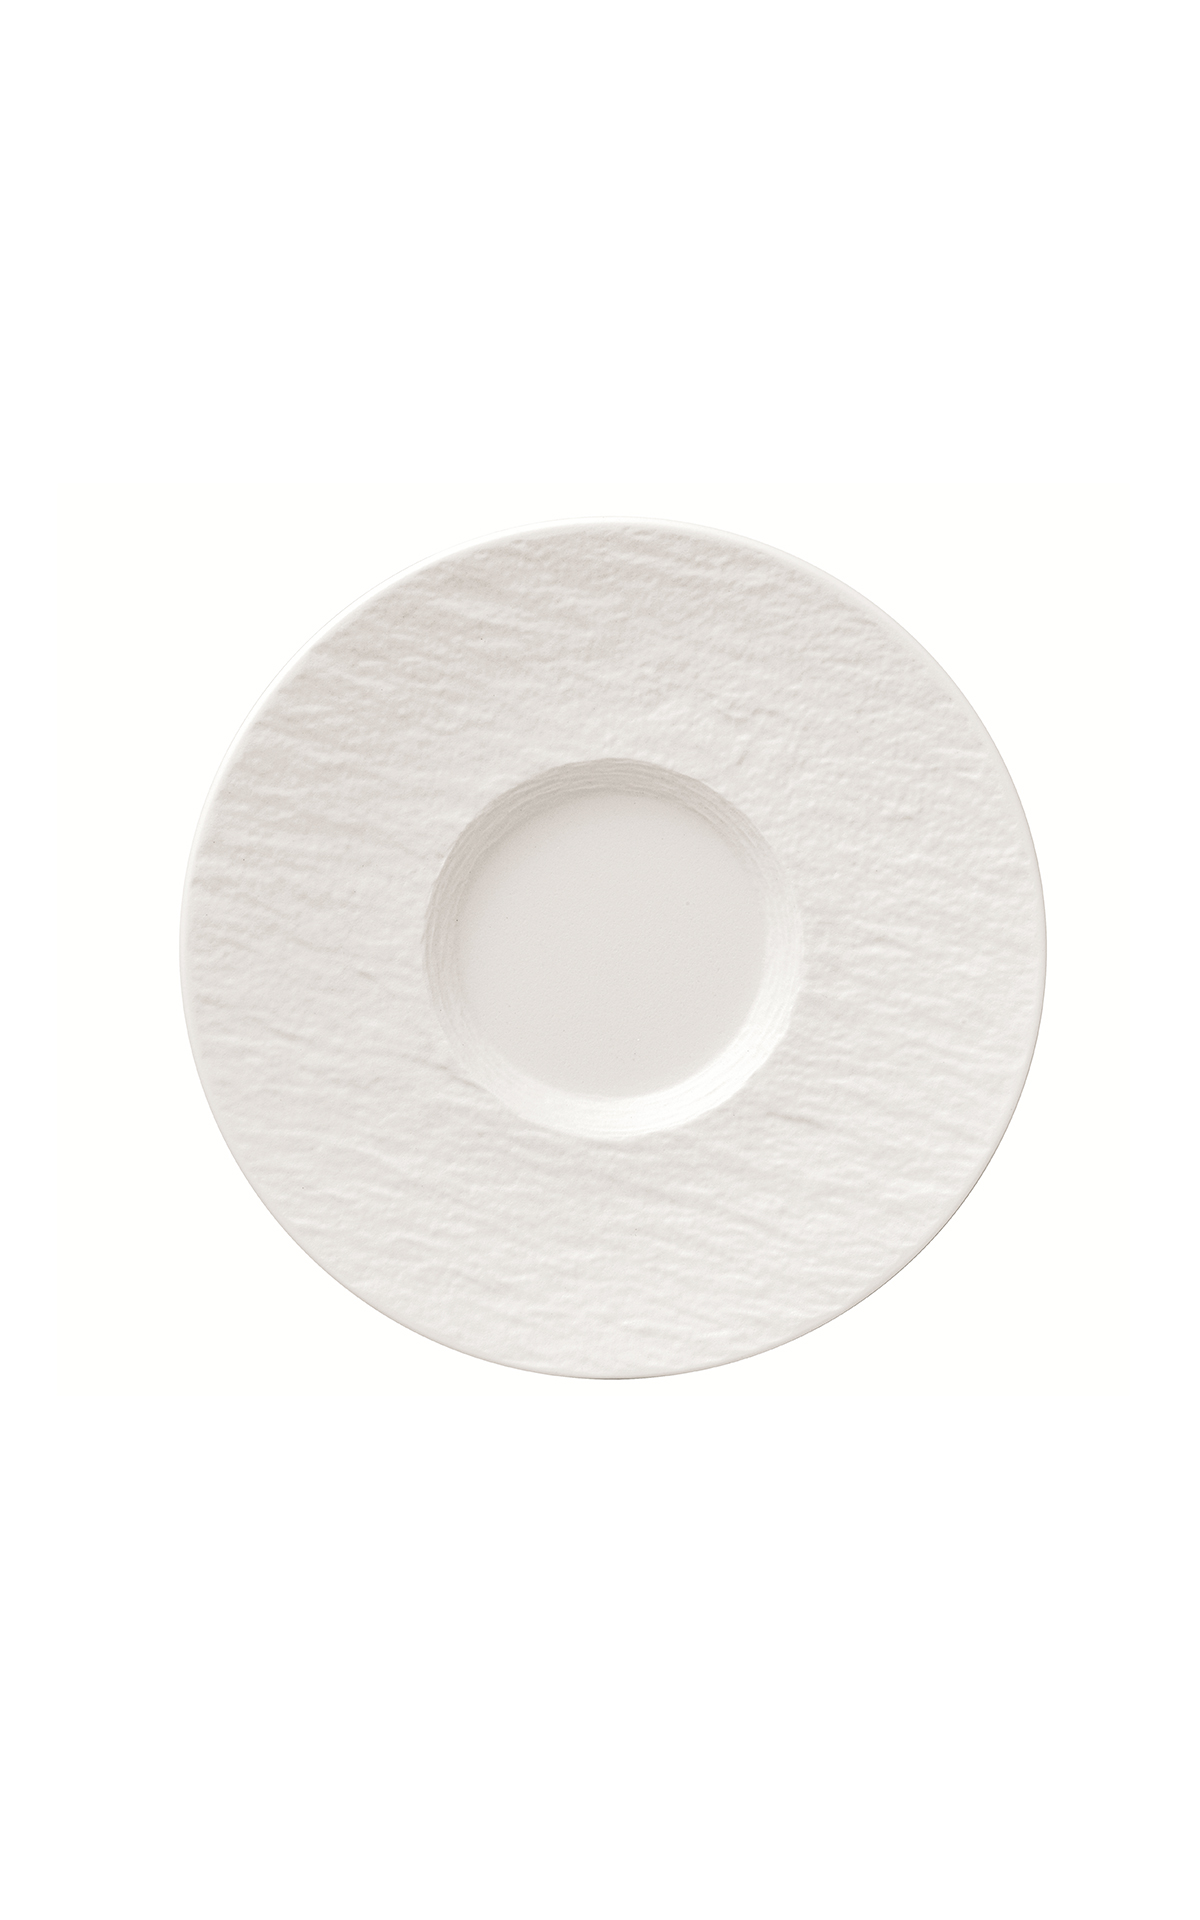 White Plate Manufacture Rock Villeroy & Boch